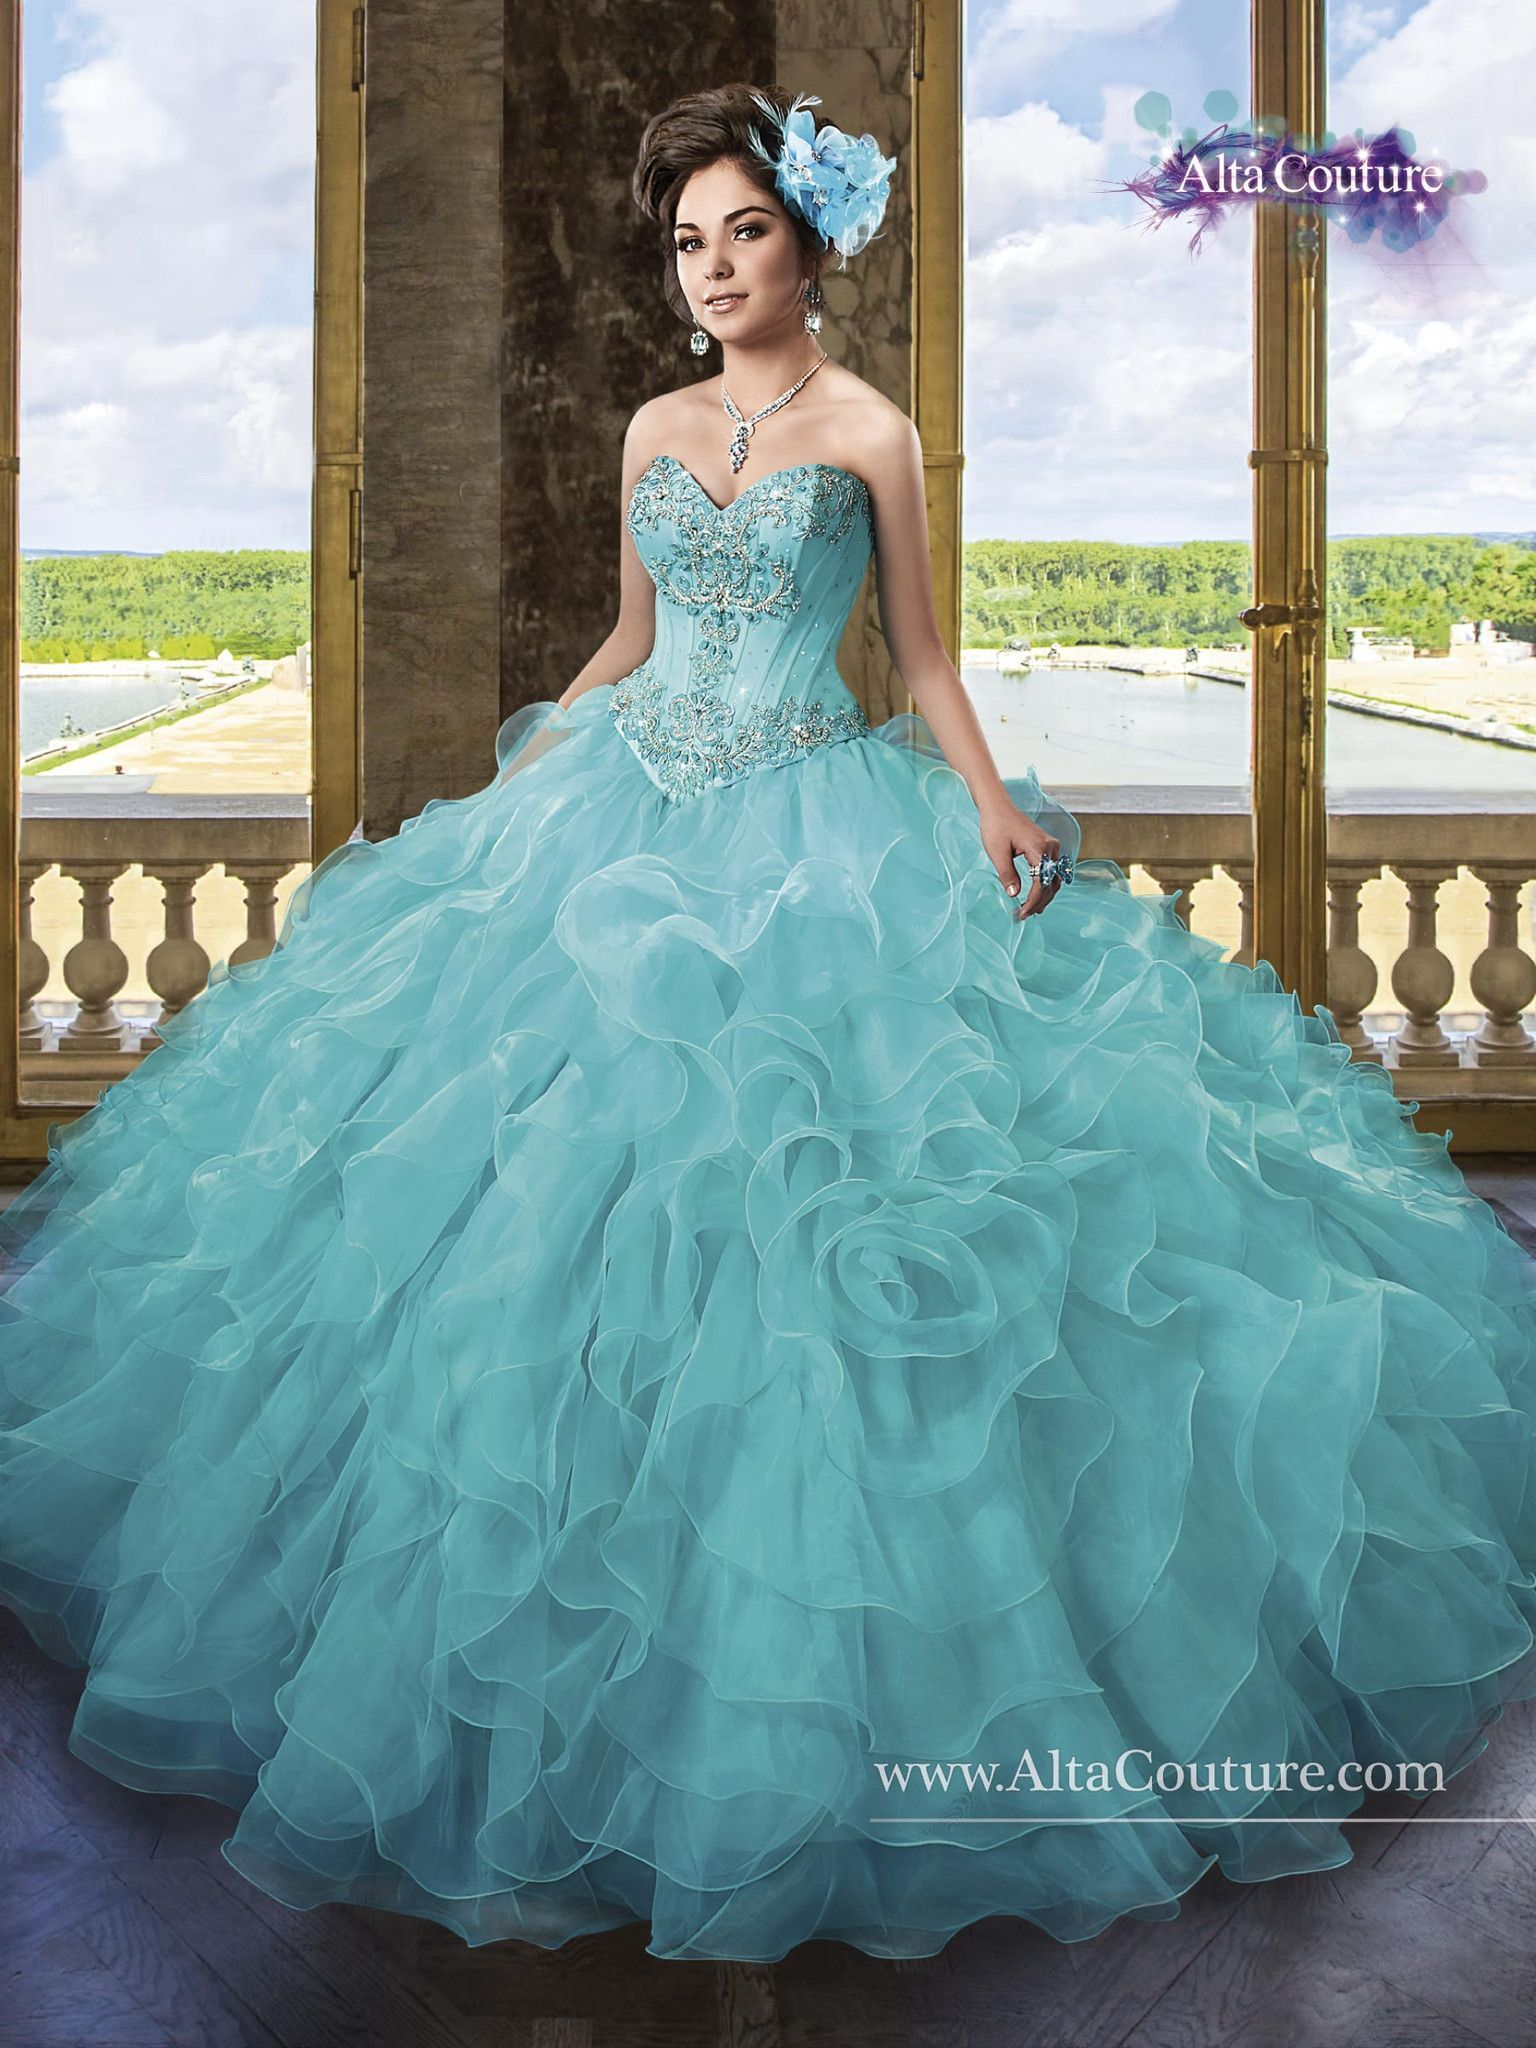 99f27d04b1f Check out the most popular color combinations to celebrate a summer  quinceanera theme that will liven up your party guests